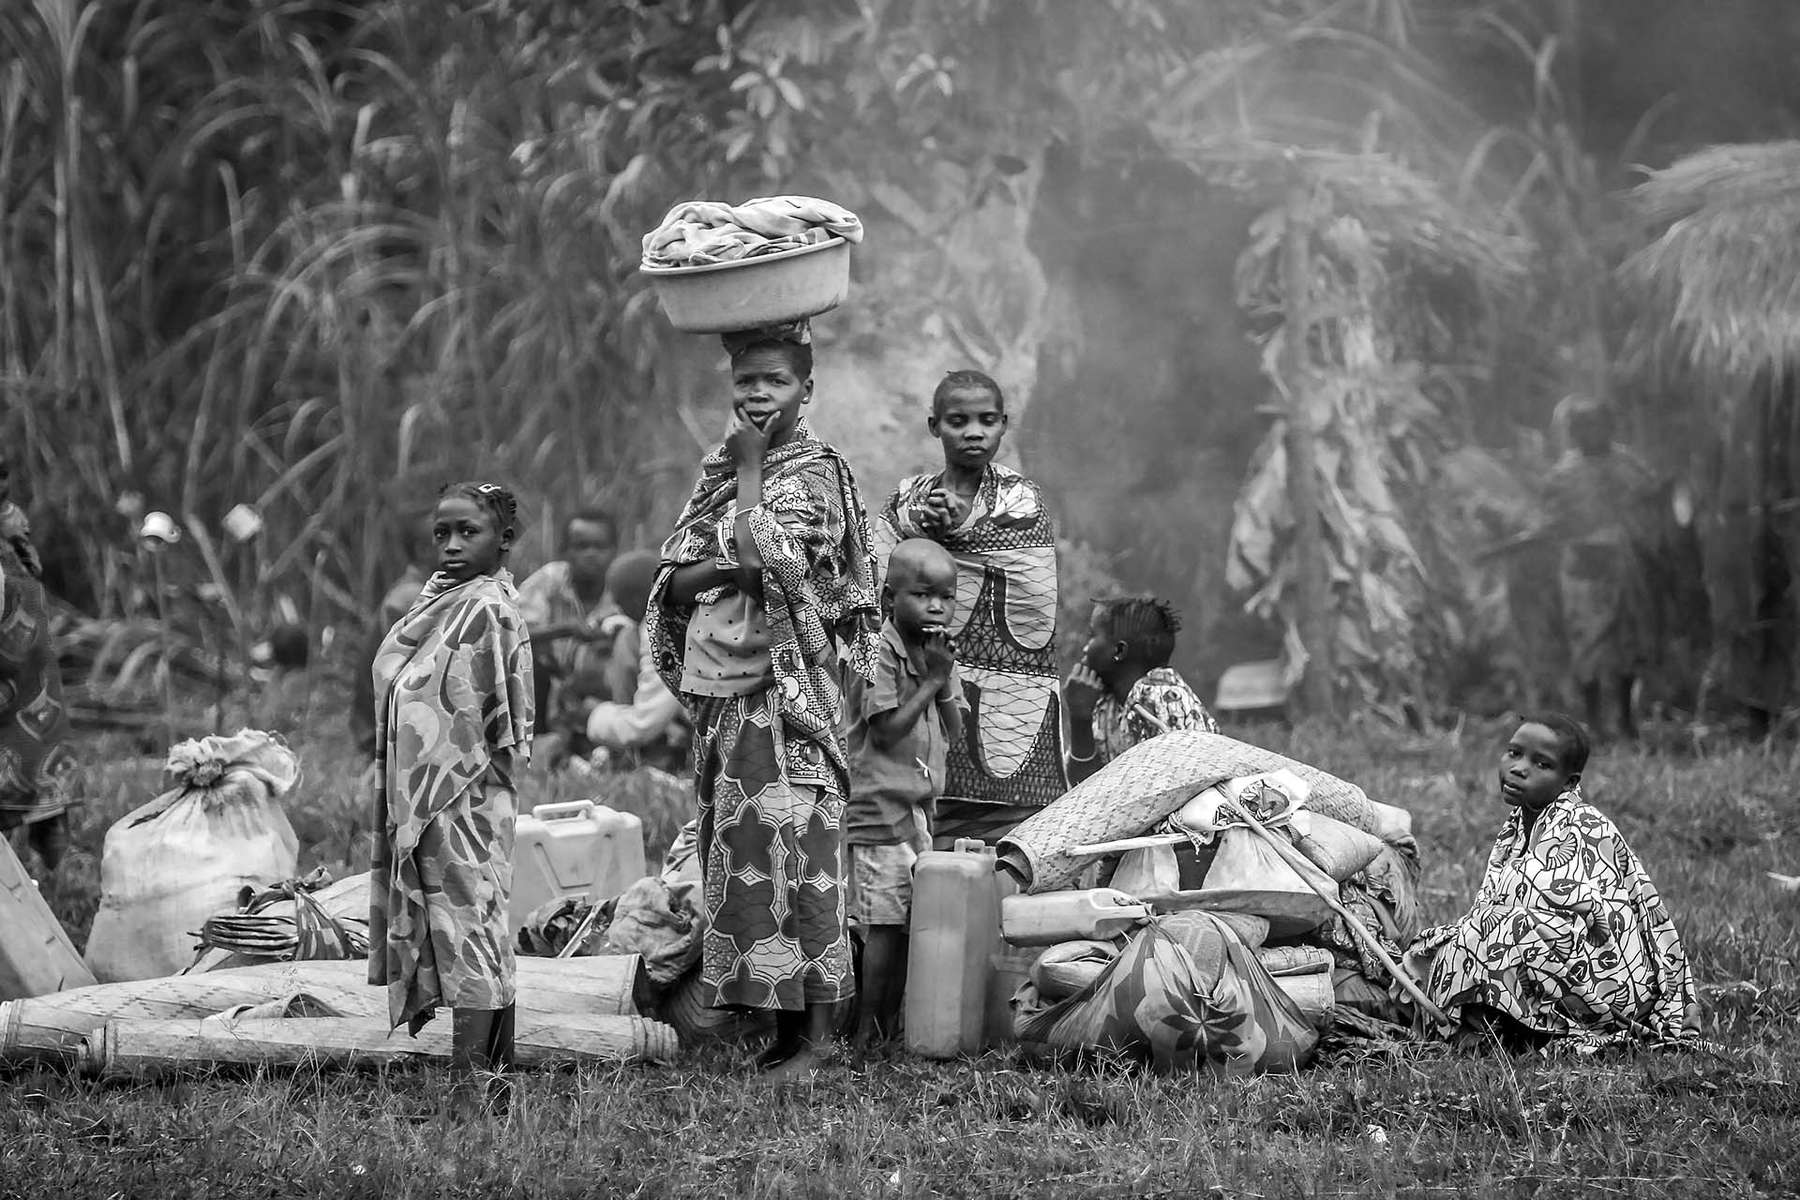 Internally displaced Congolese made a long journey with all their possessions to find a safe haven at a Catholic church in the village of Gety in Ituri region.